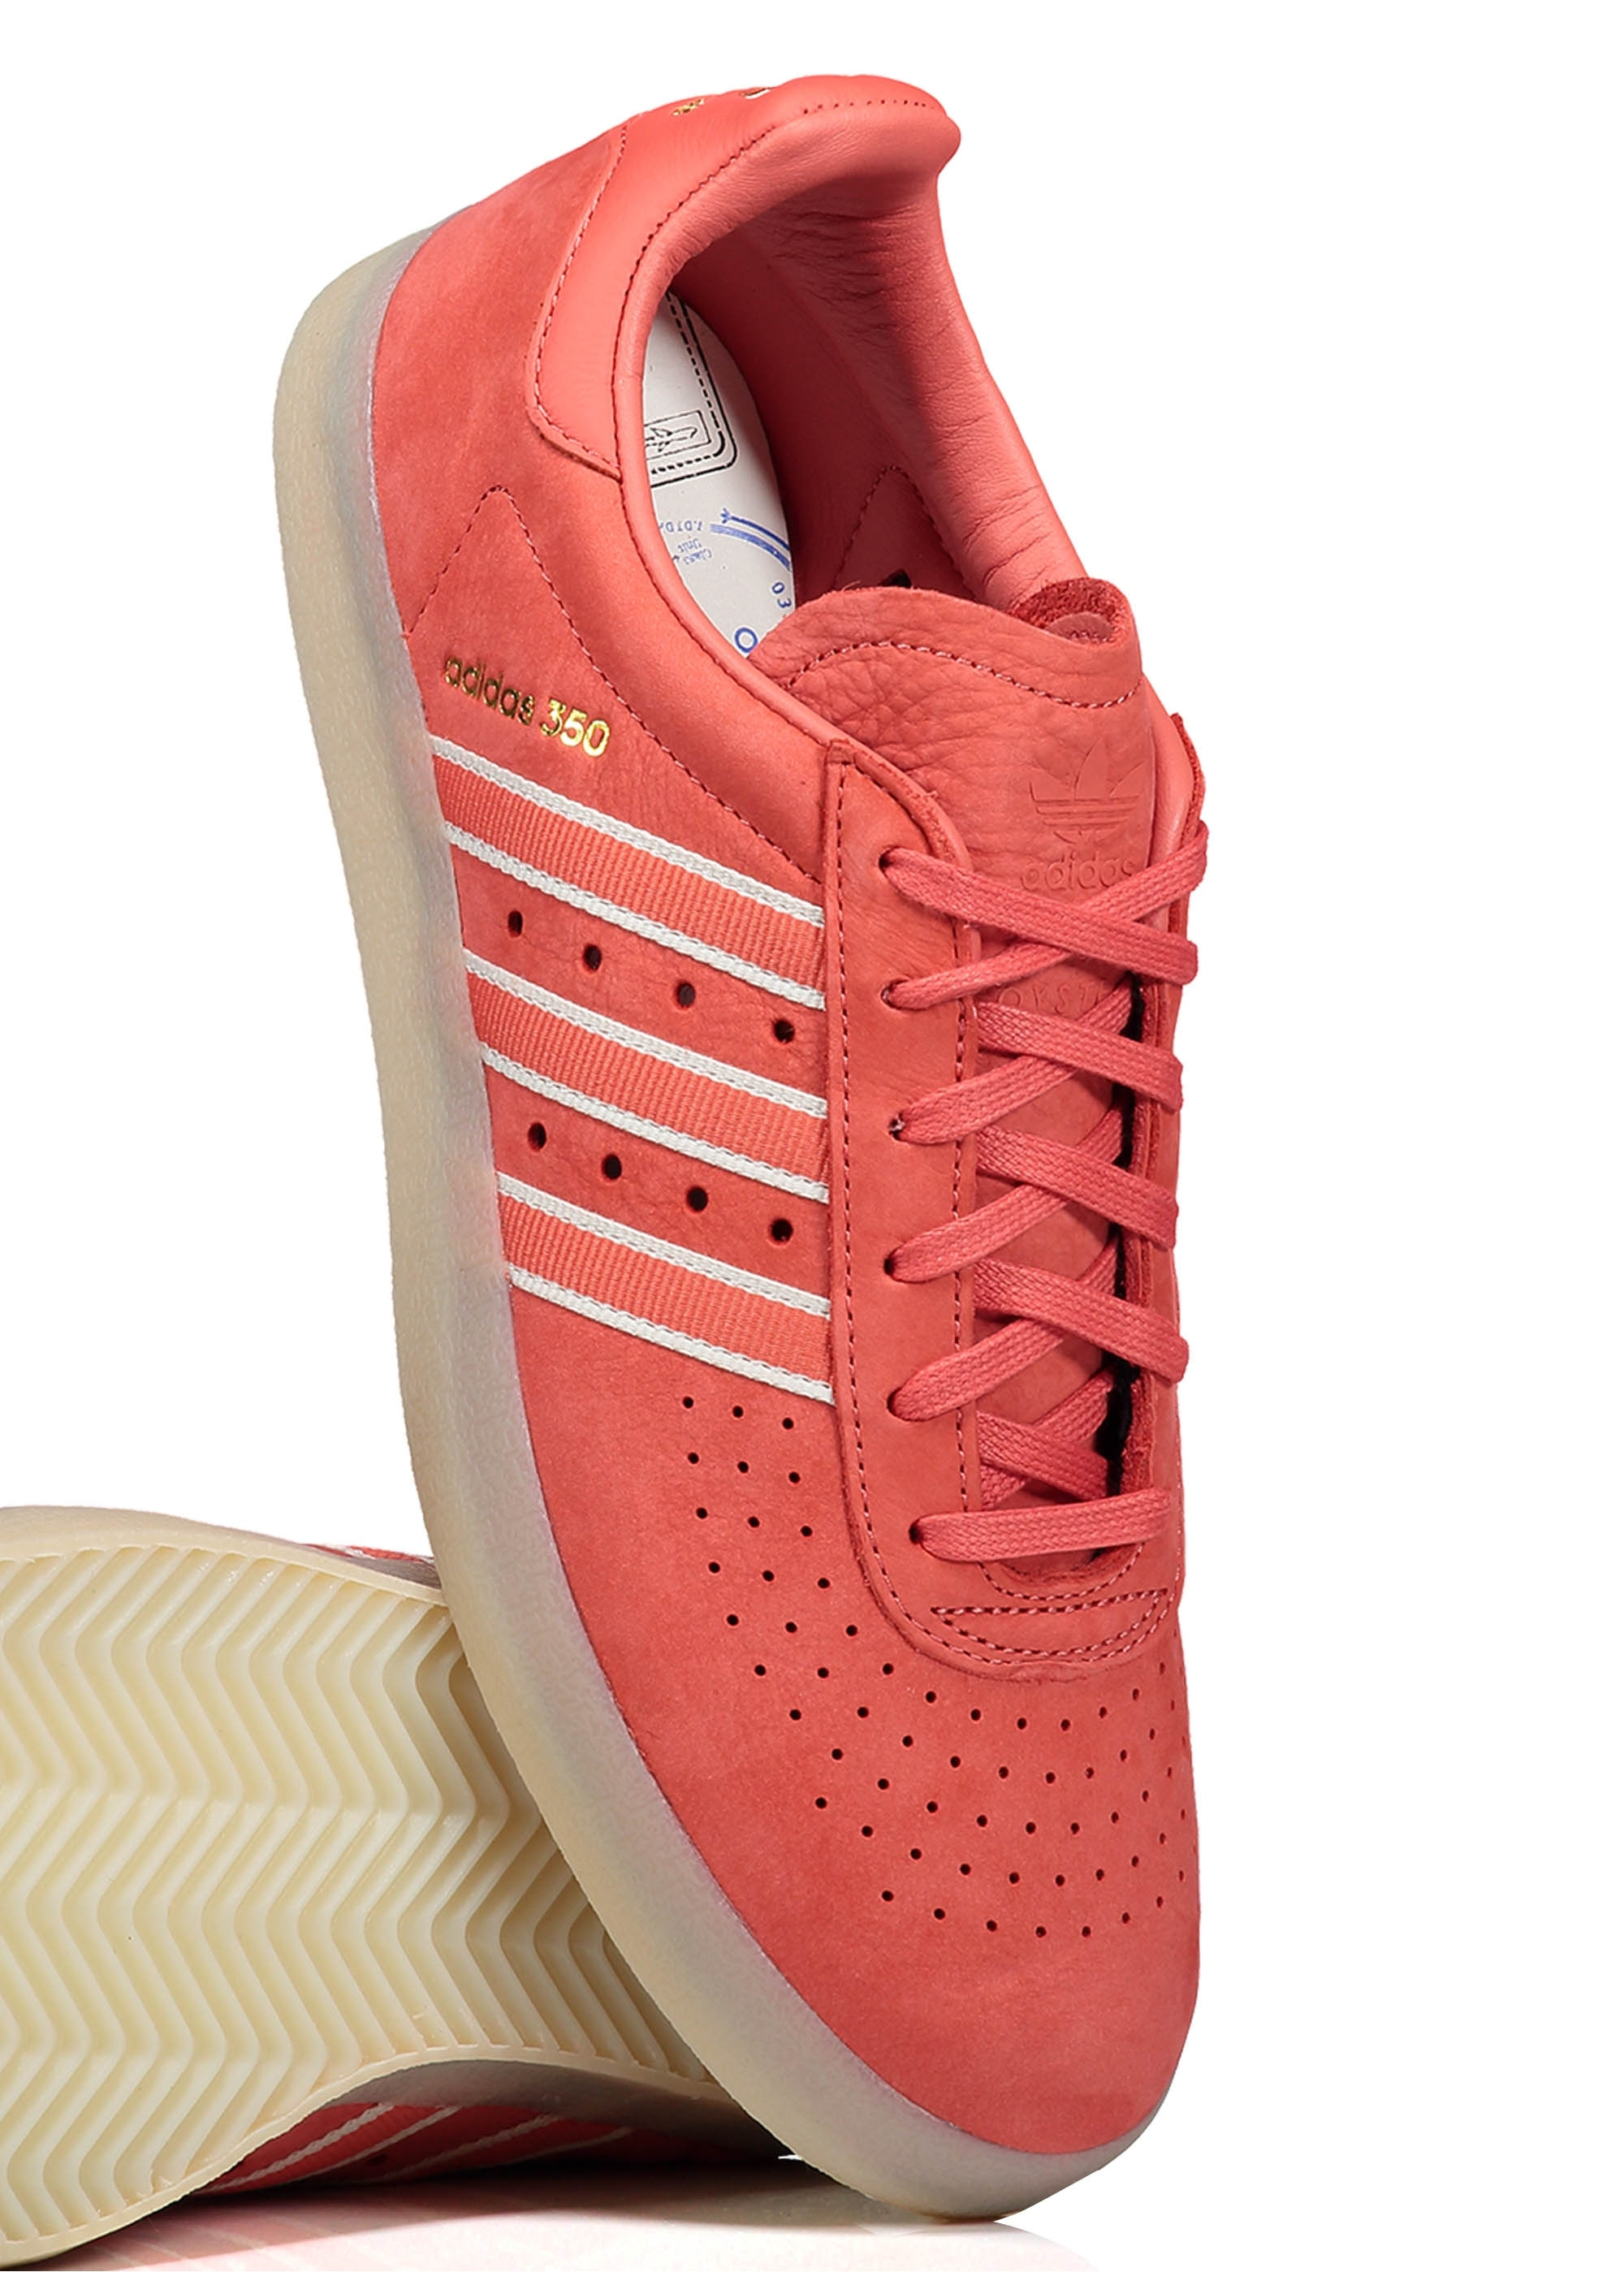 separation shoes 6c527 13176 adidas Originals Footwear x Oyster Holdings 350 Oyster - Trace Scarlet